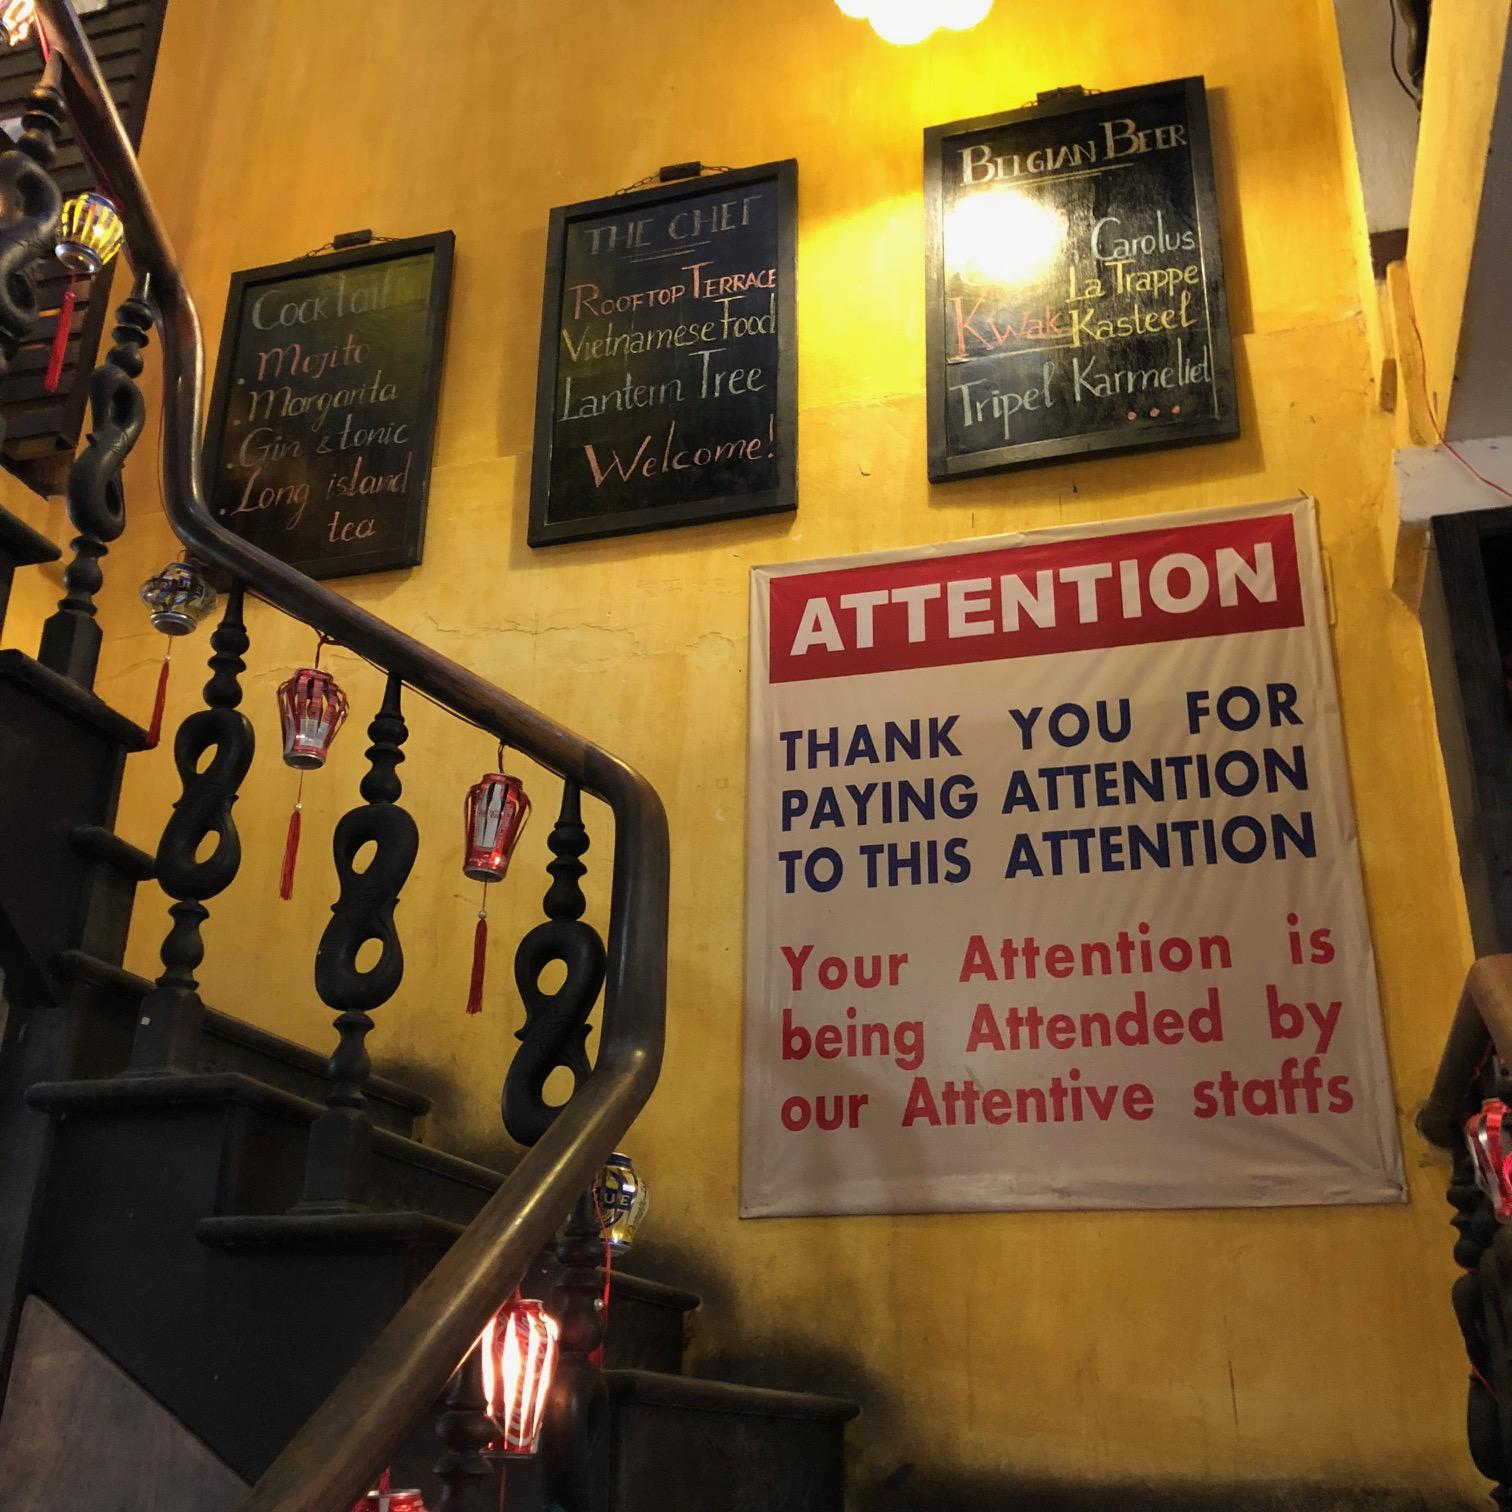 Funny banner: Thank you for paying attention